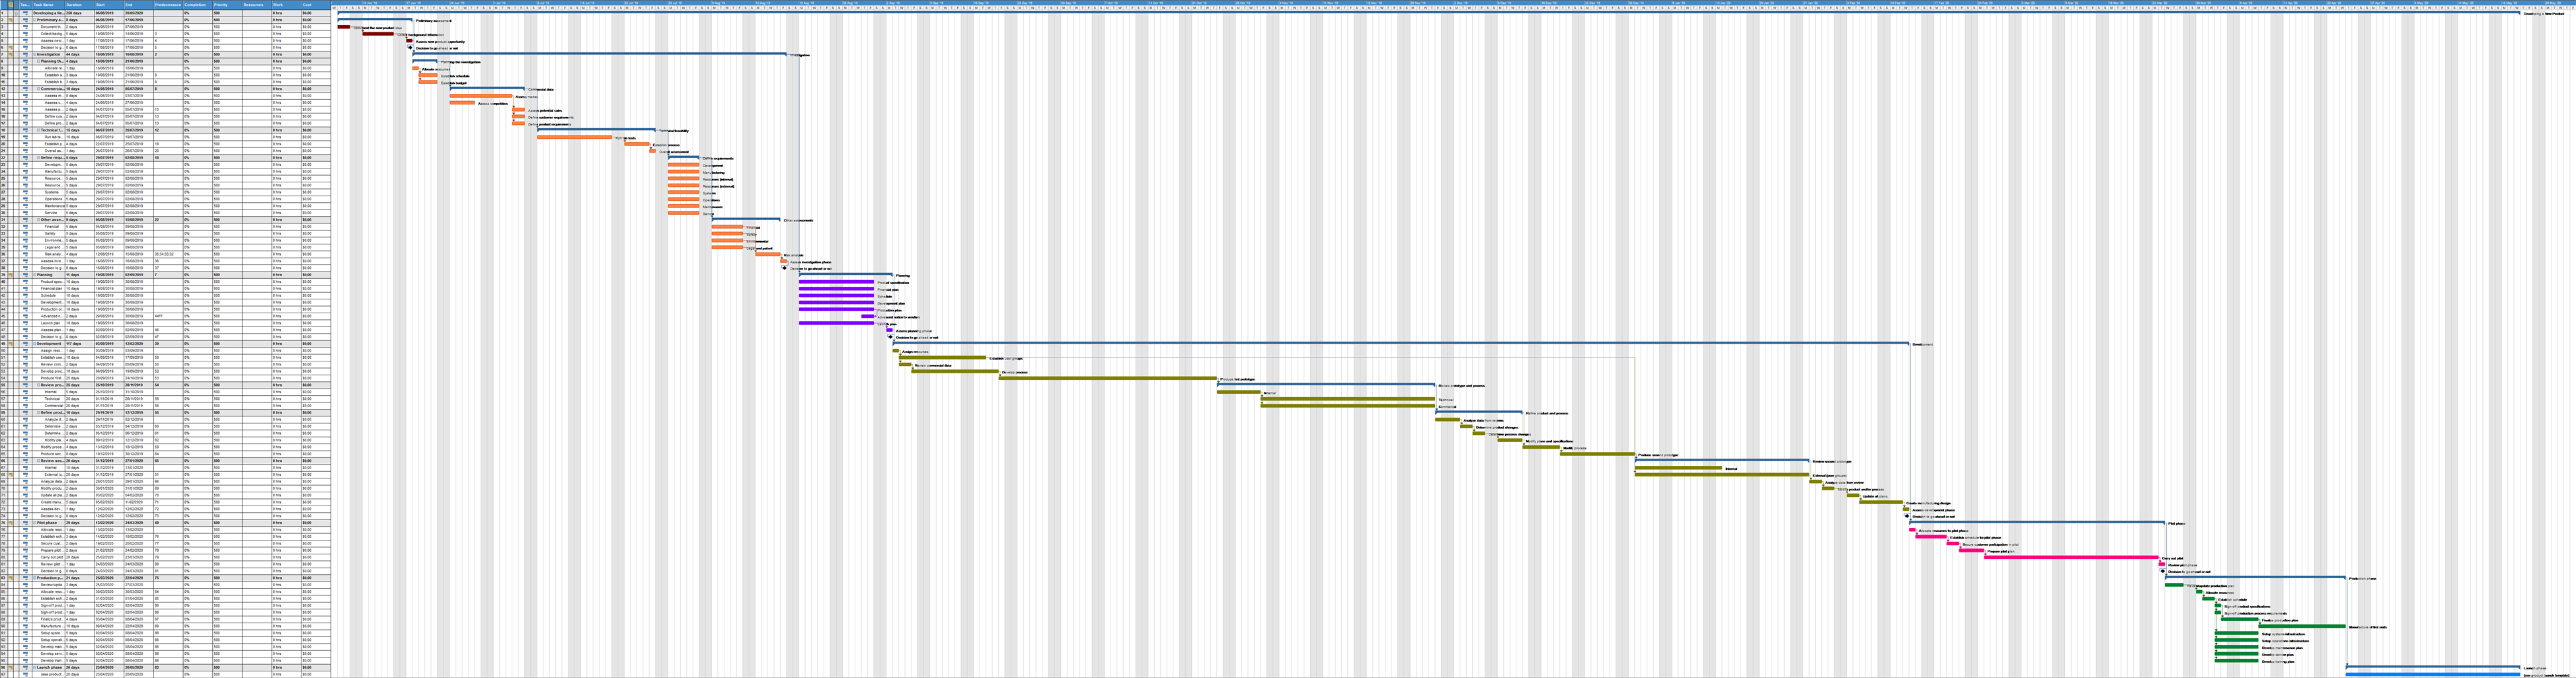 Developing a New Product Gantt Chart